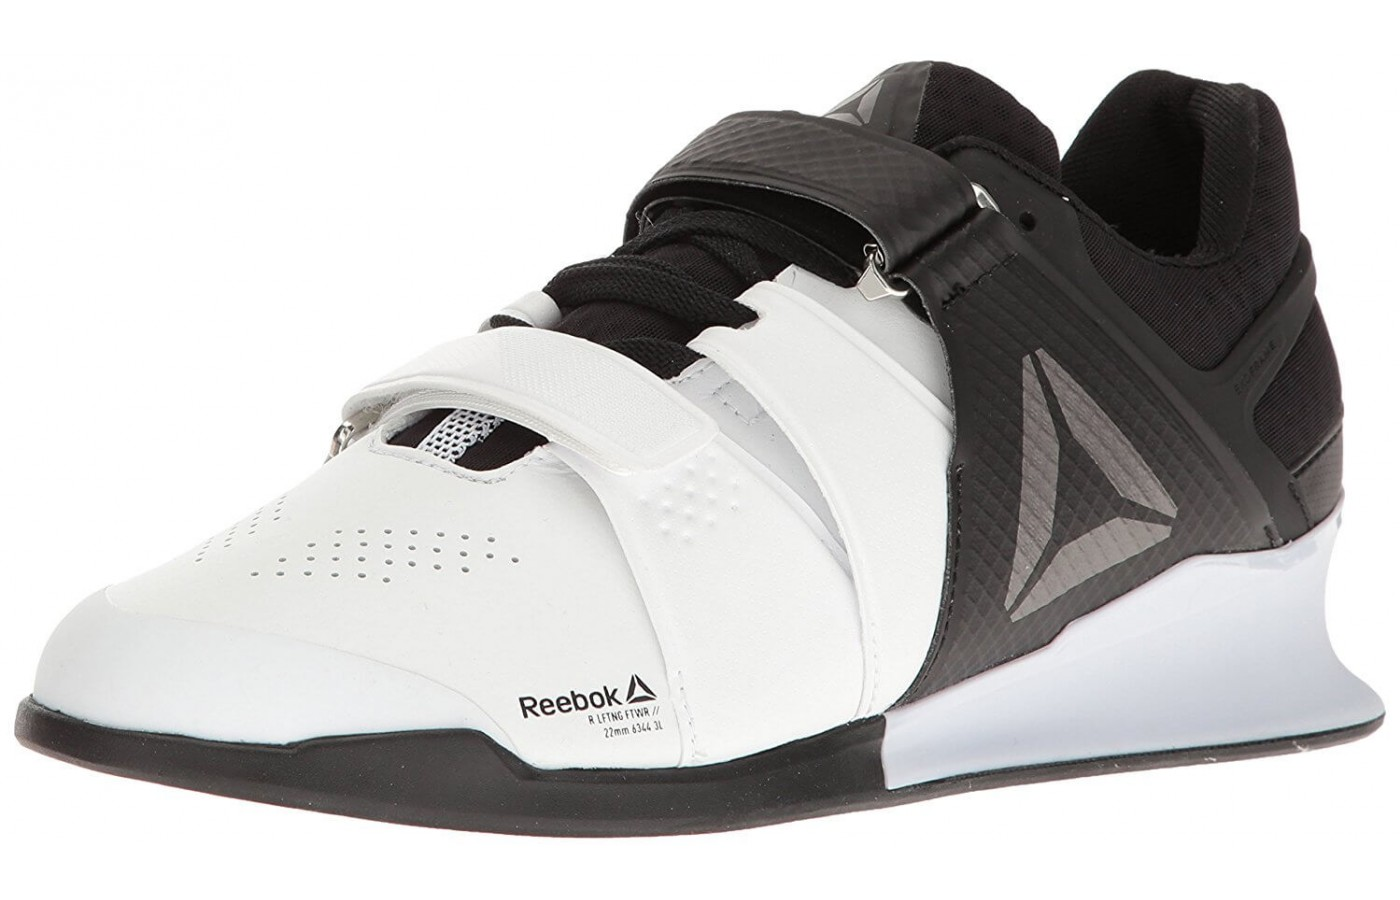 ba293fe48aa827 The Reebok Legacy Lifter features Flexcage technology ...